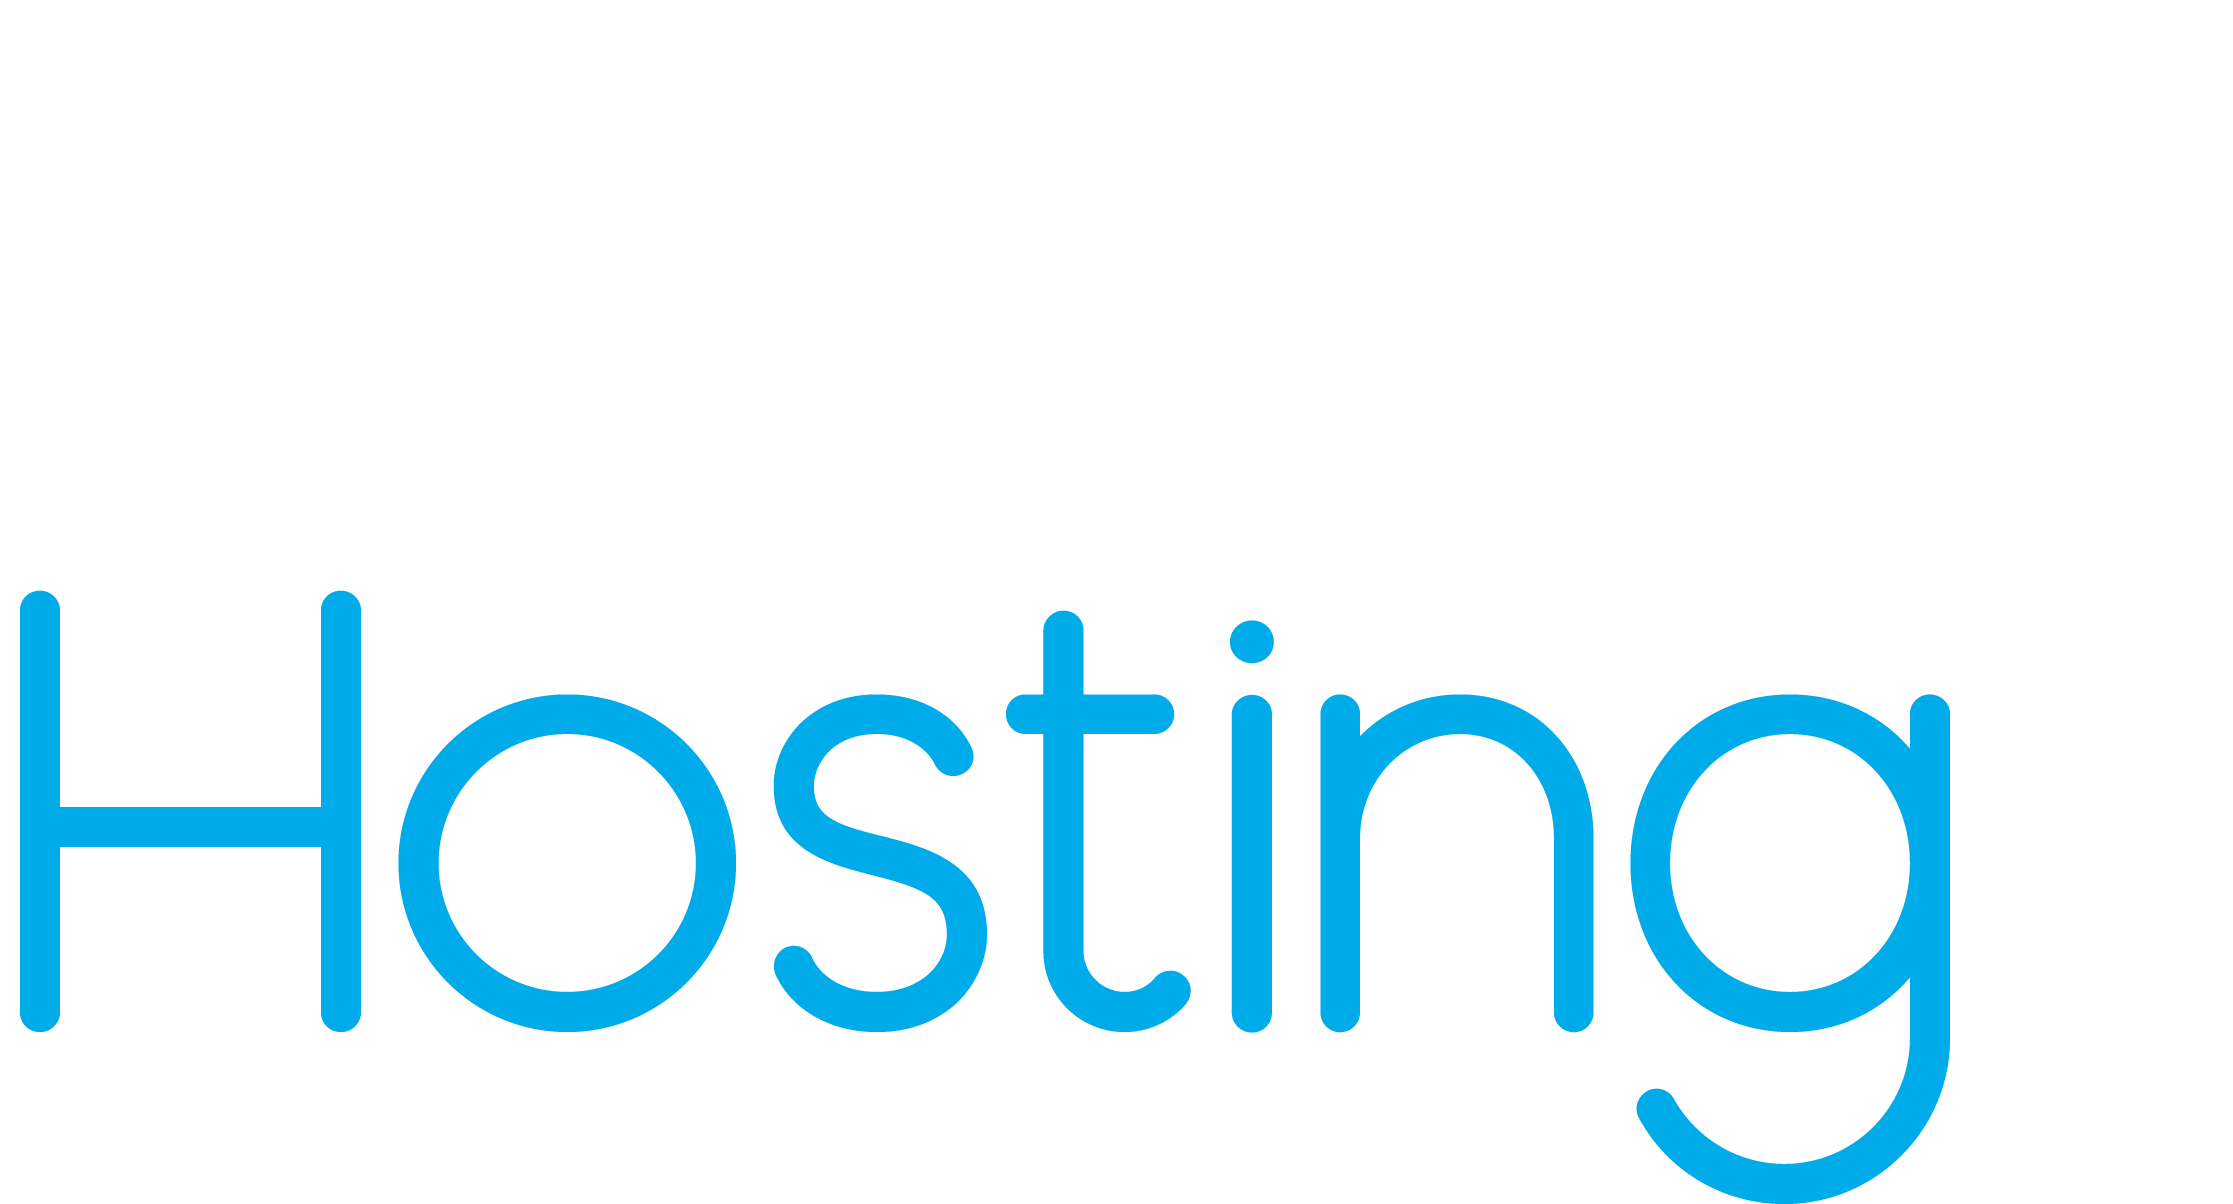 Diffusion Hosting